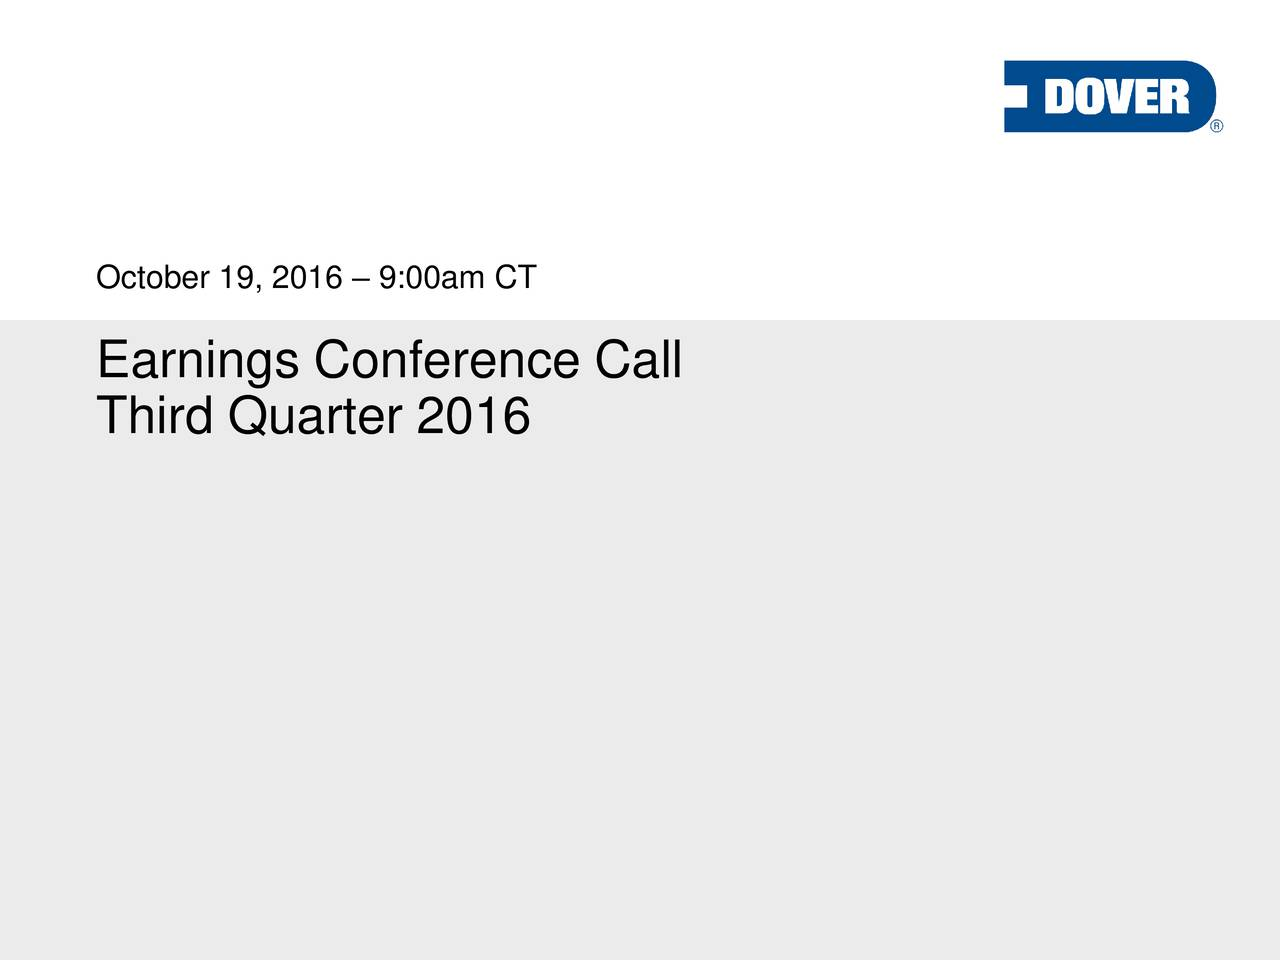 Earnings Conference Call Third Quarter 2016